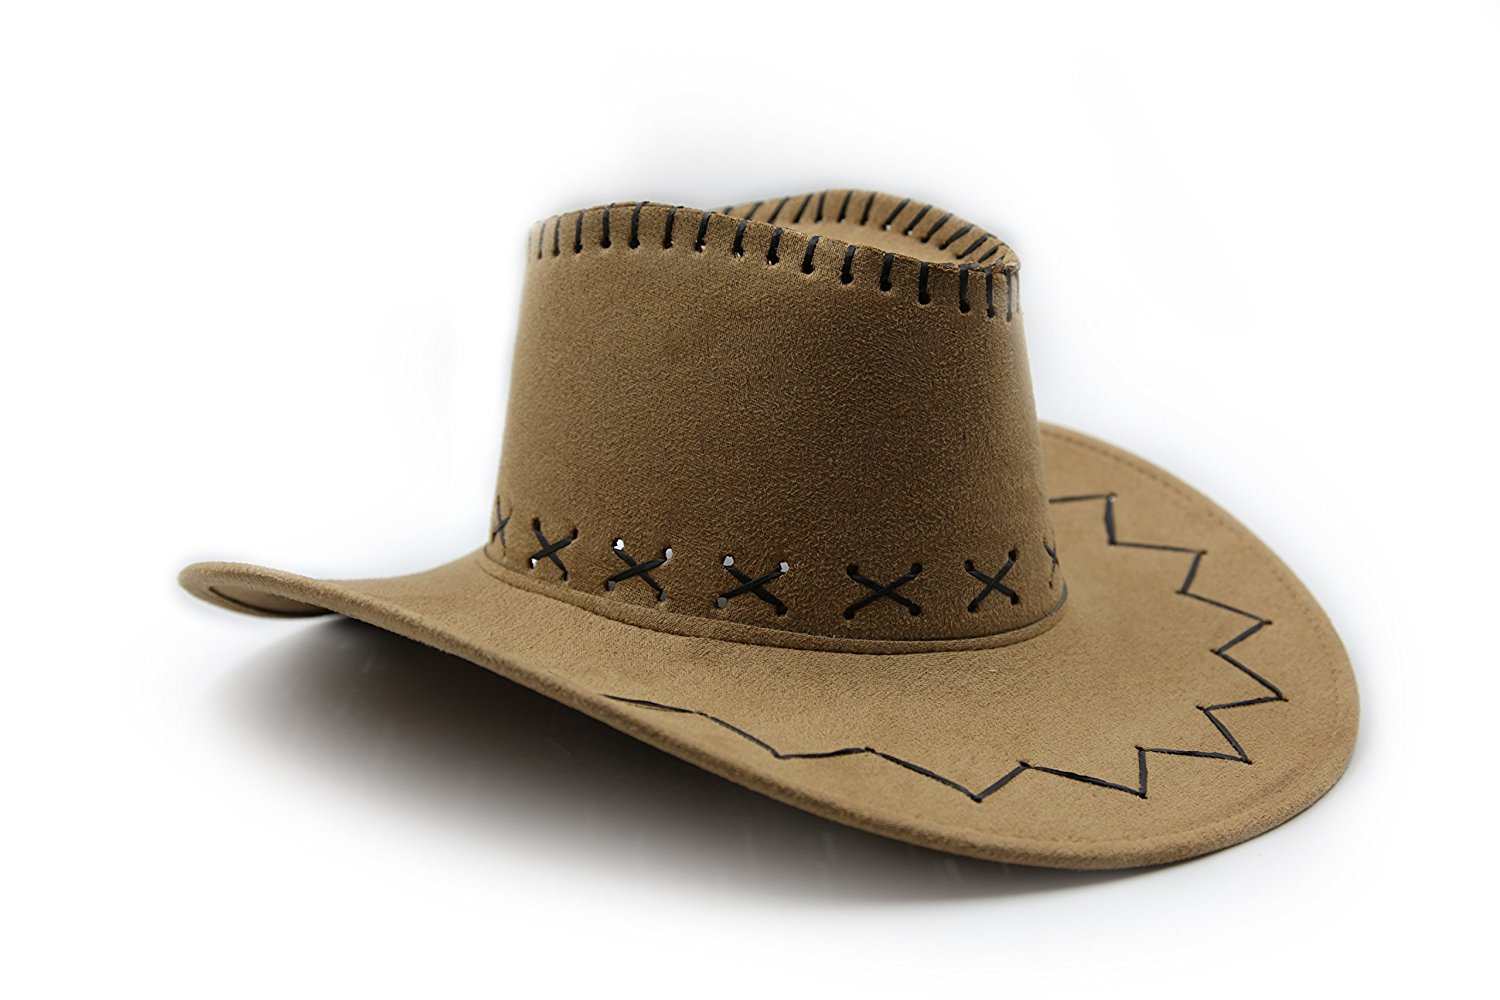 826292ae0db Get Quotations · Soaka Light Weight Cowboy Cowgirl Hat - Microsuede Cowboy  Hat - Play Kreative TM